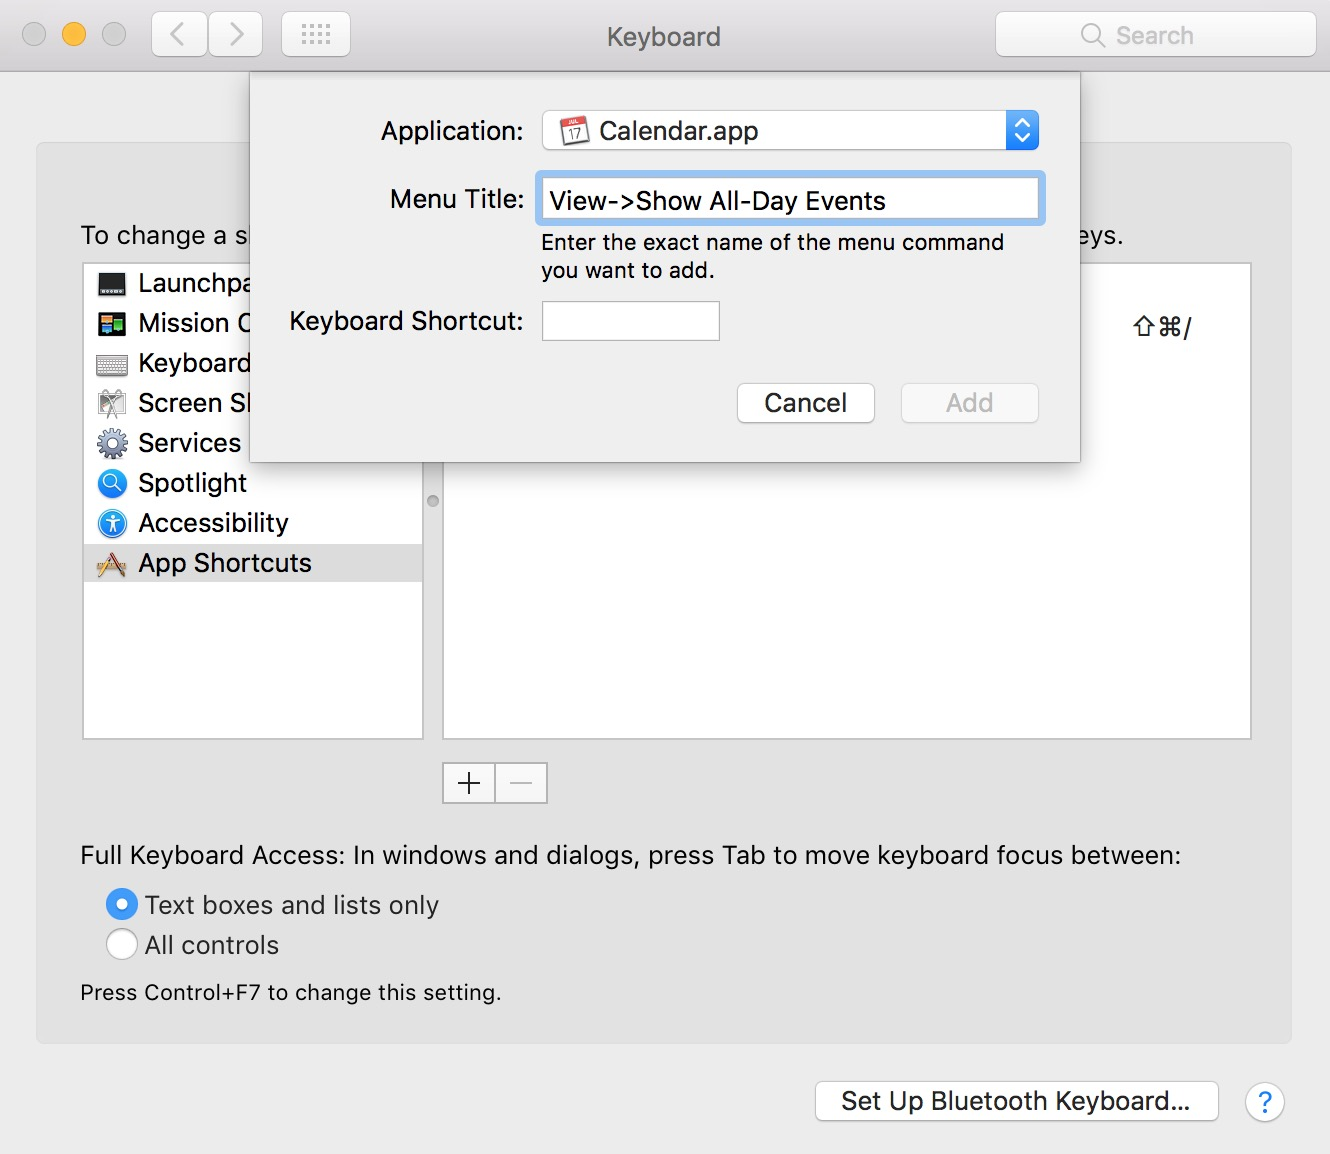 Adding a new custom keyboard shortcut